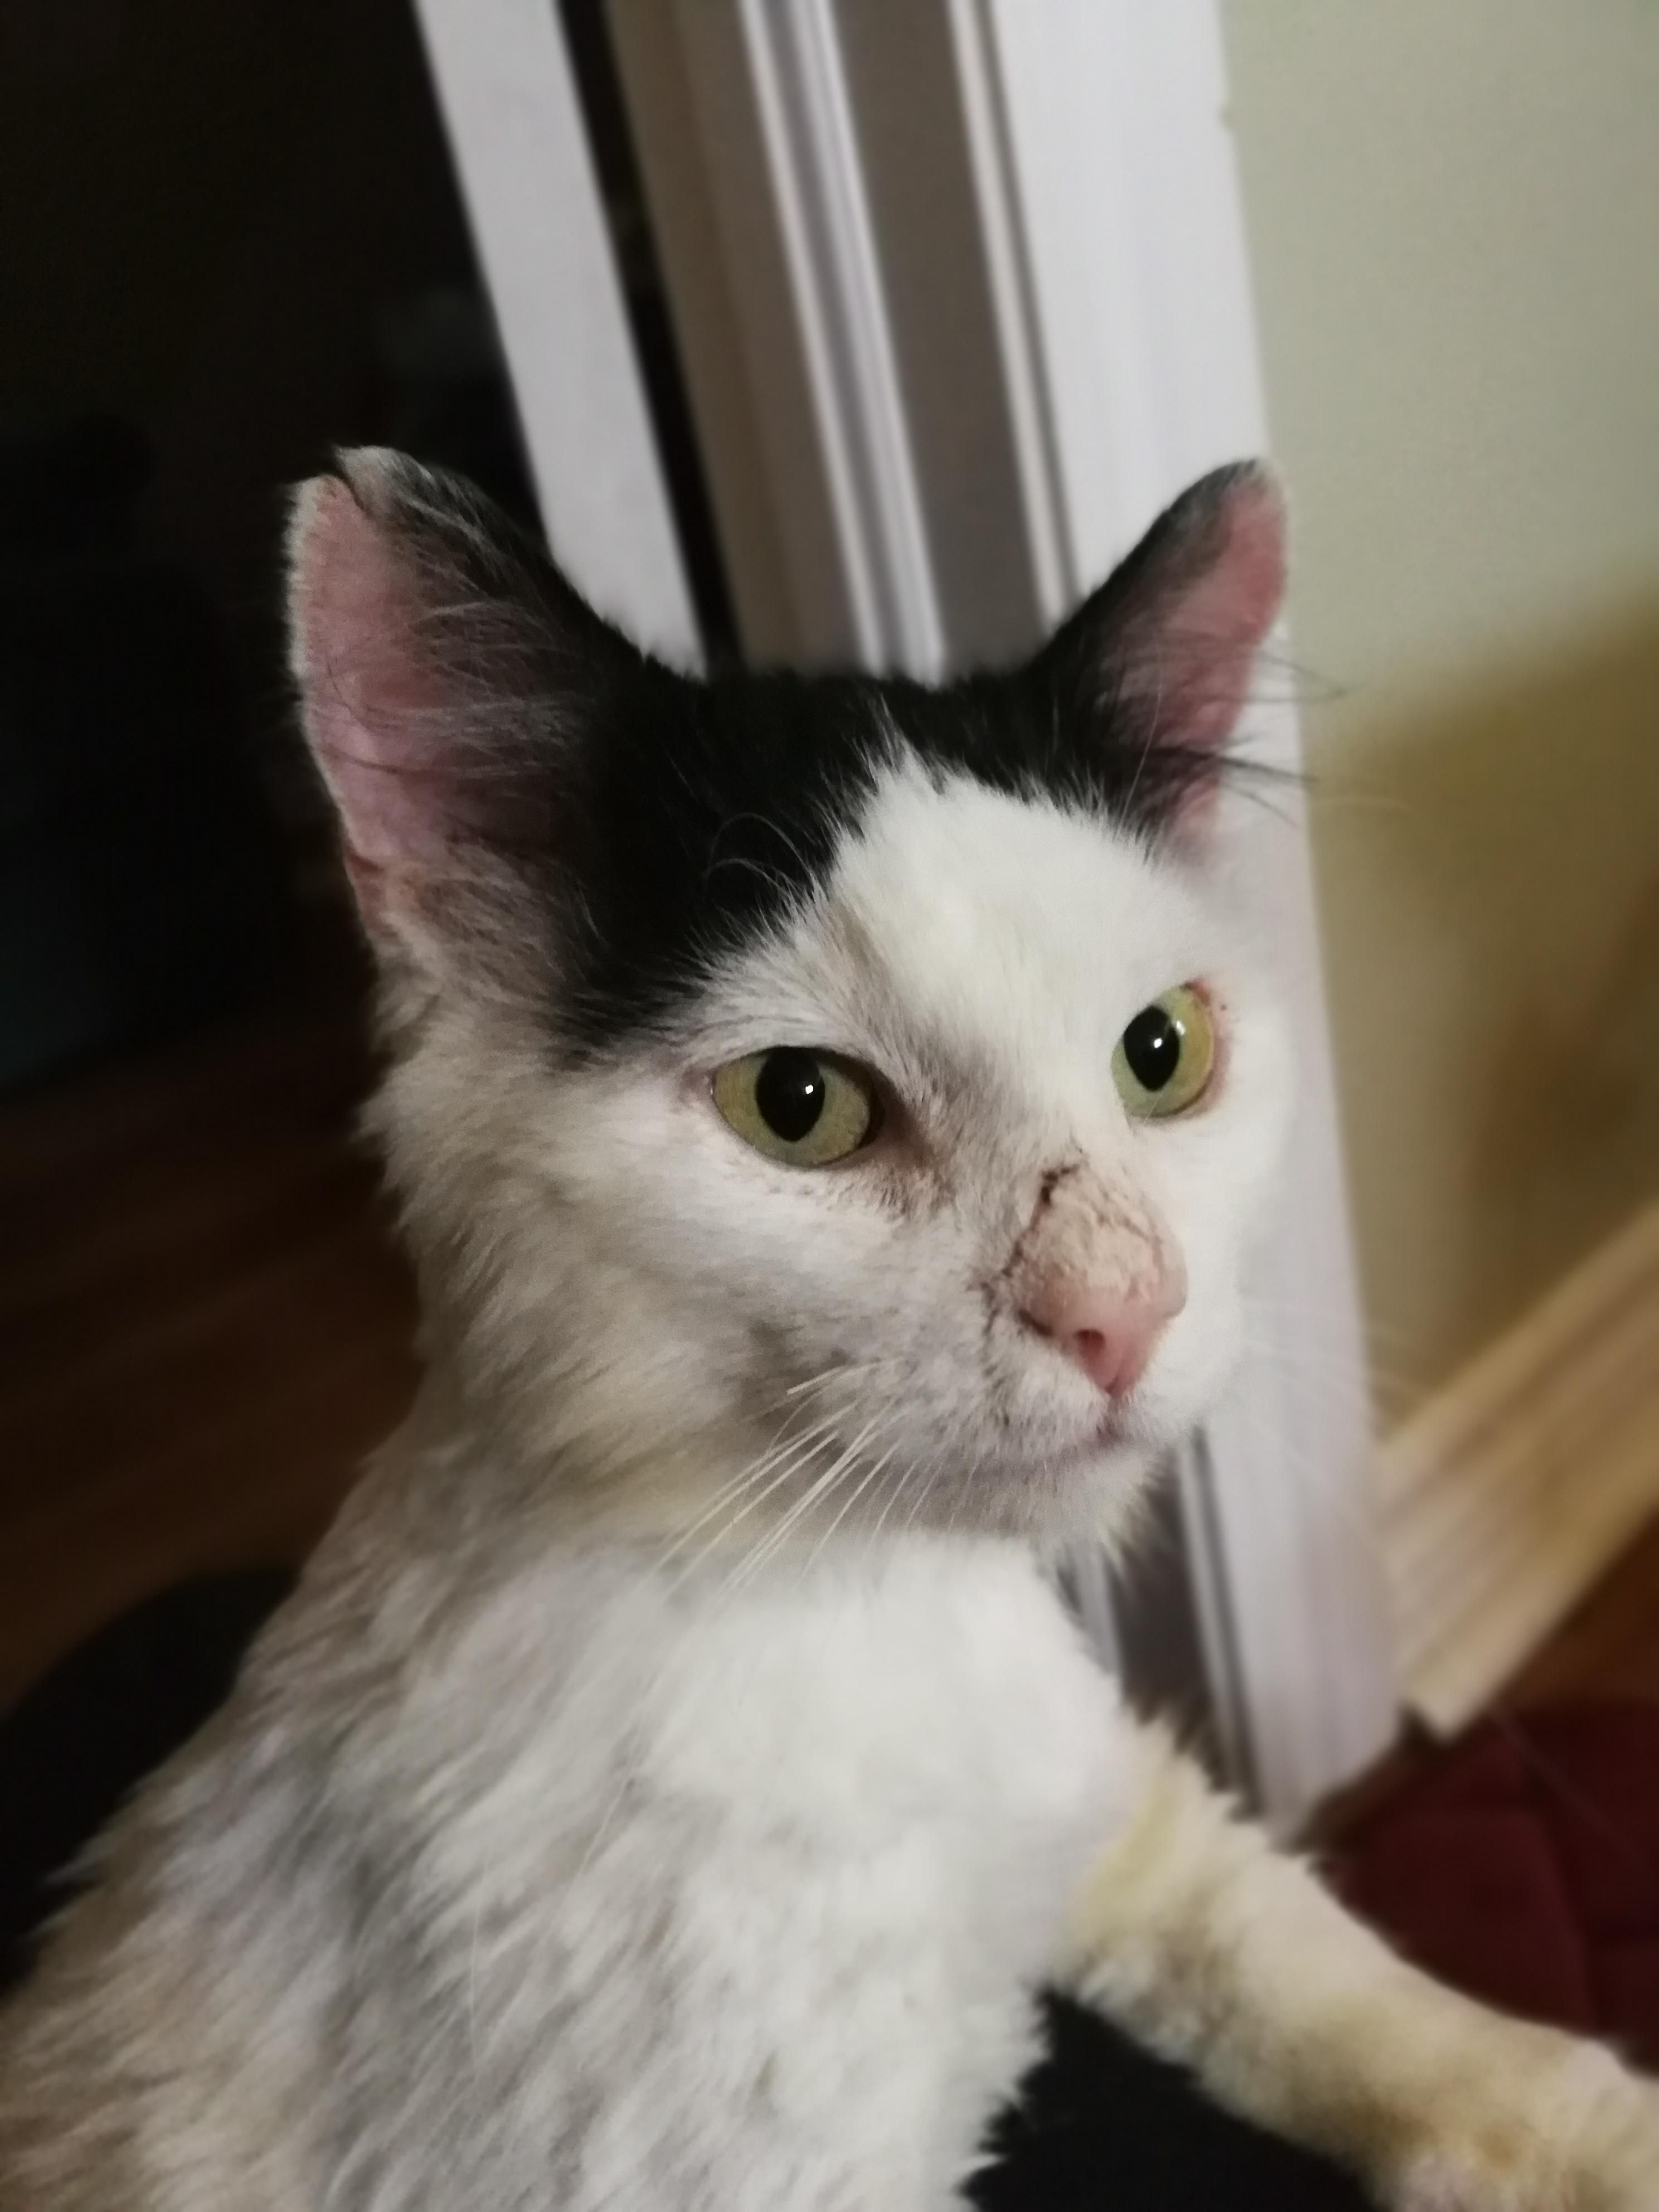 Reddit Meet Scar Scar Enjoys Catnip Being Inside And Food Http Bit Ly 2xgjklw Cute Cats And Dogs Fluffy Animals Cute Cats